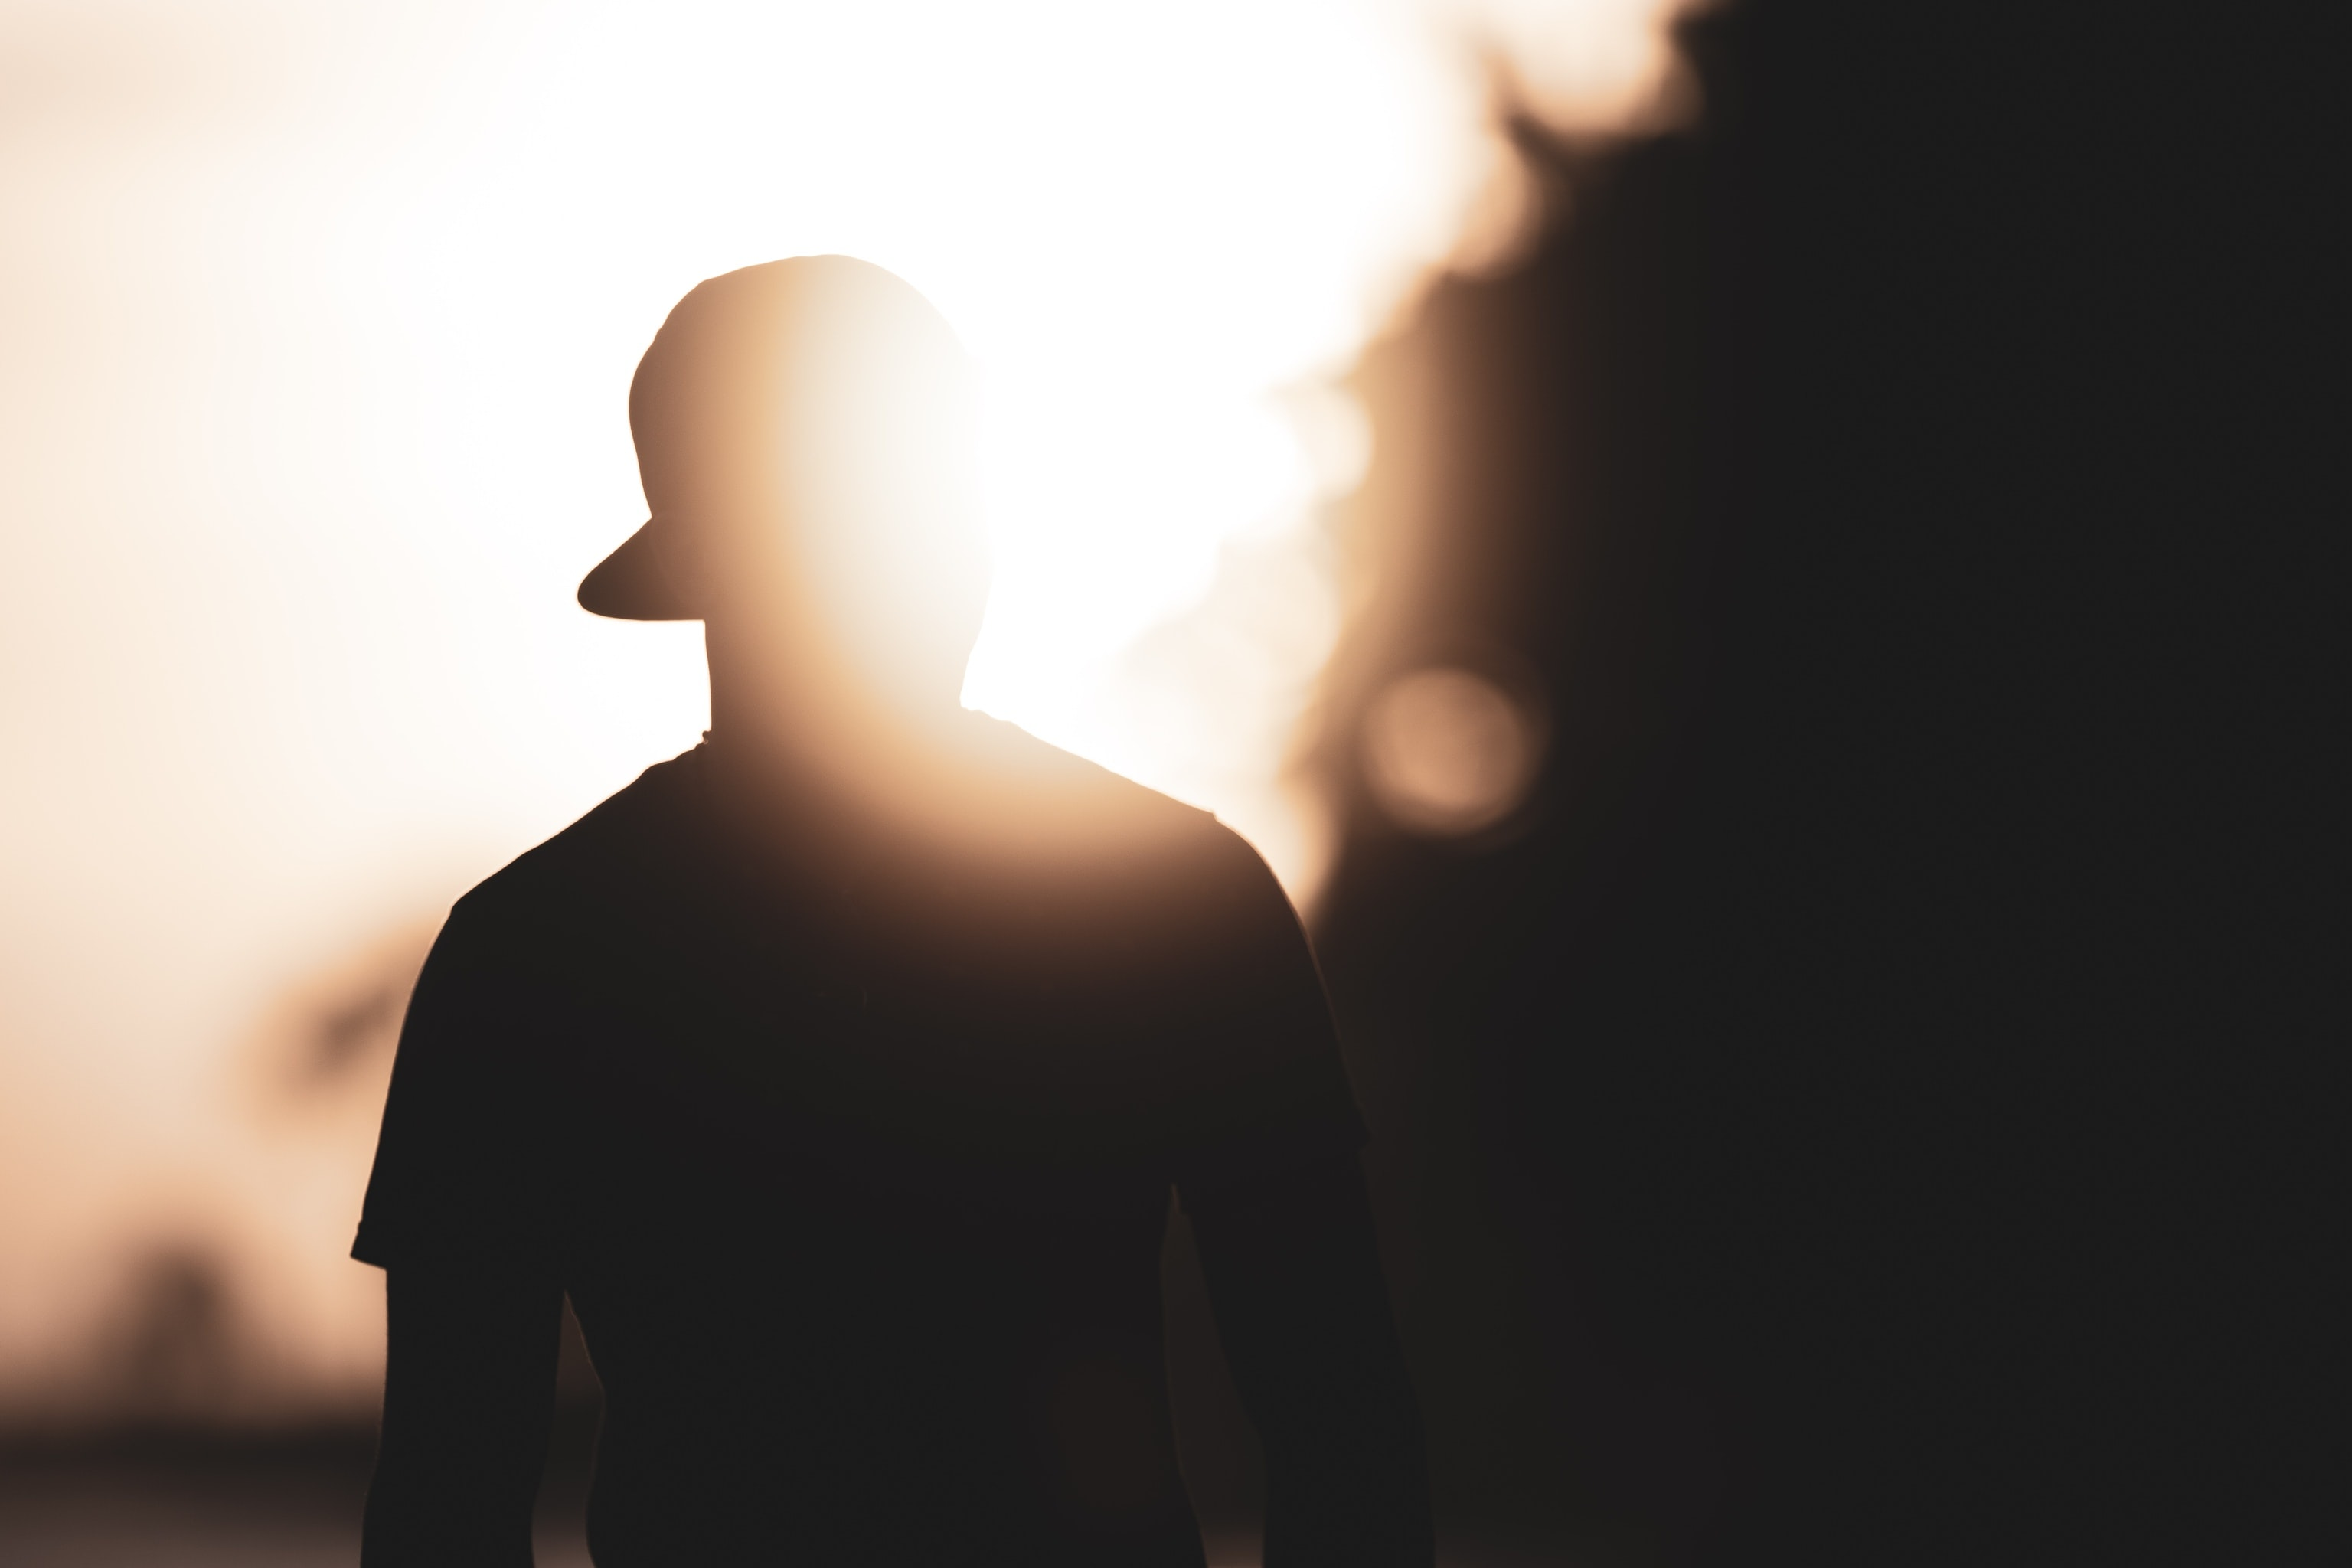 silhouette photography of person with hat